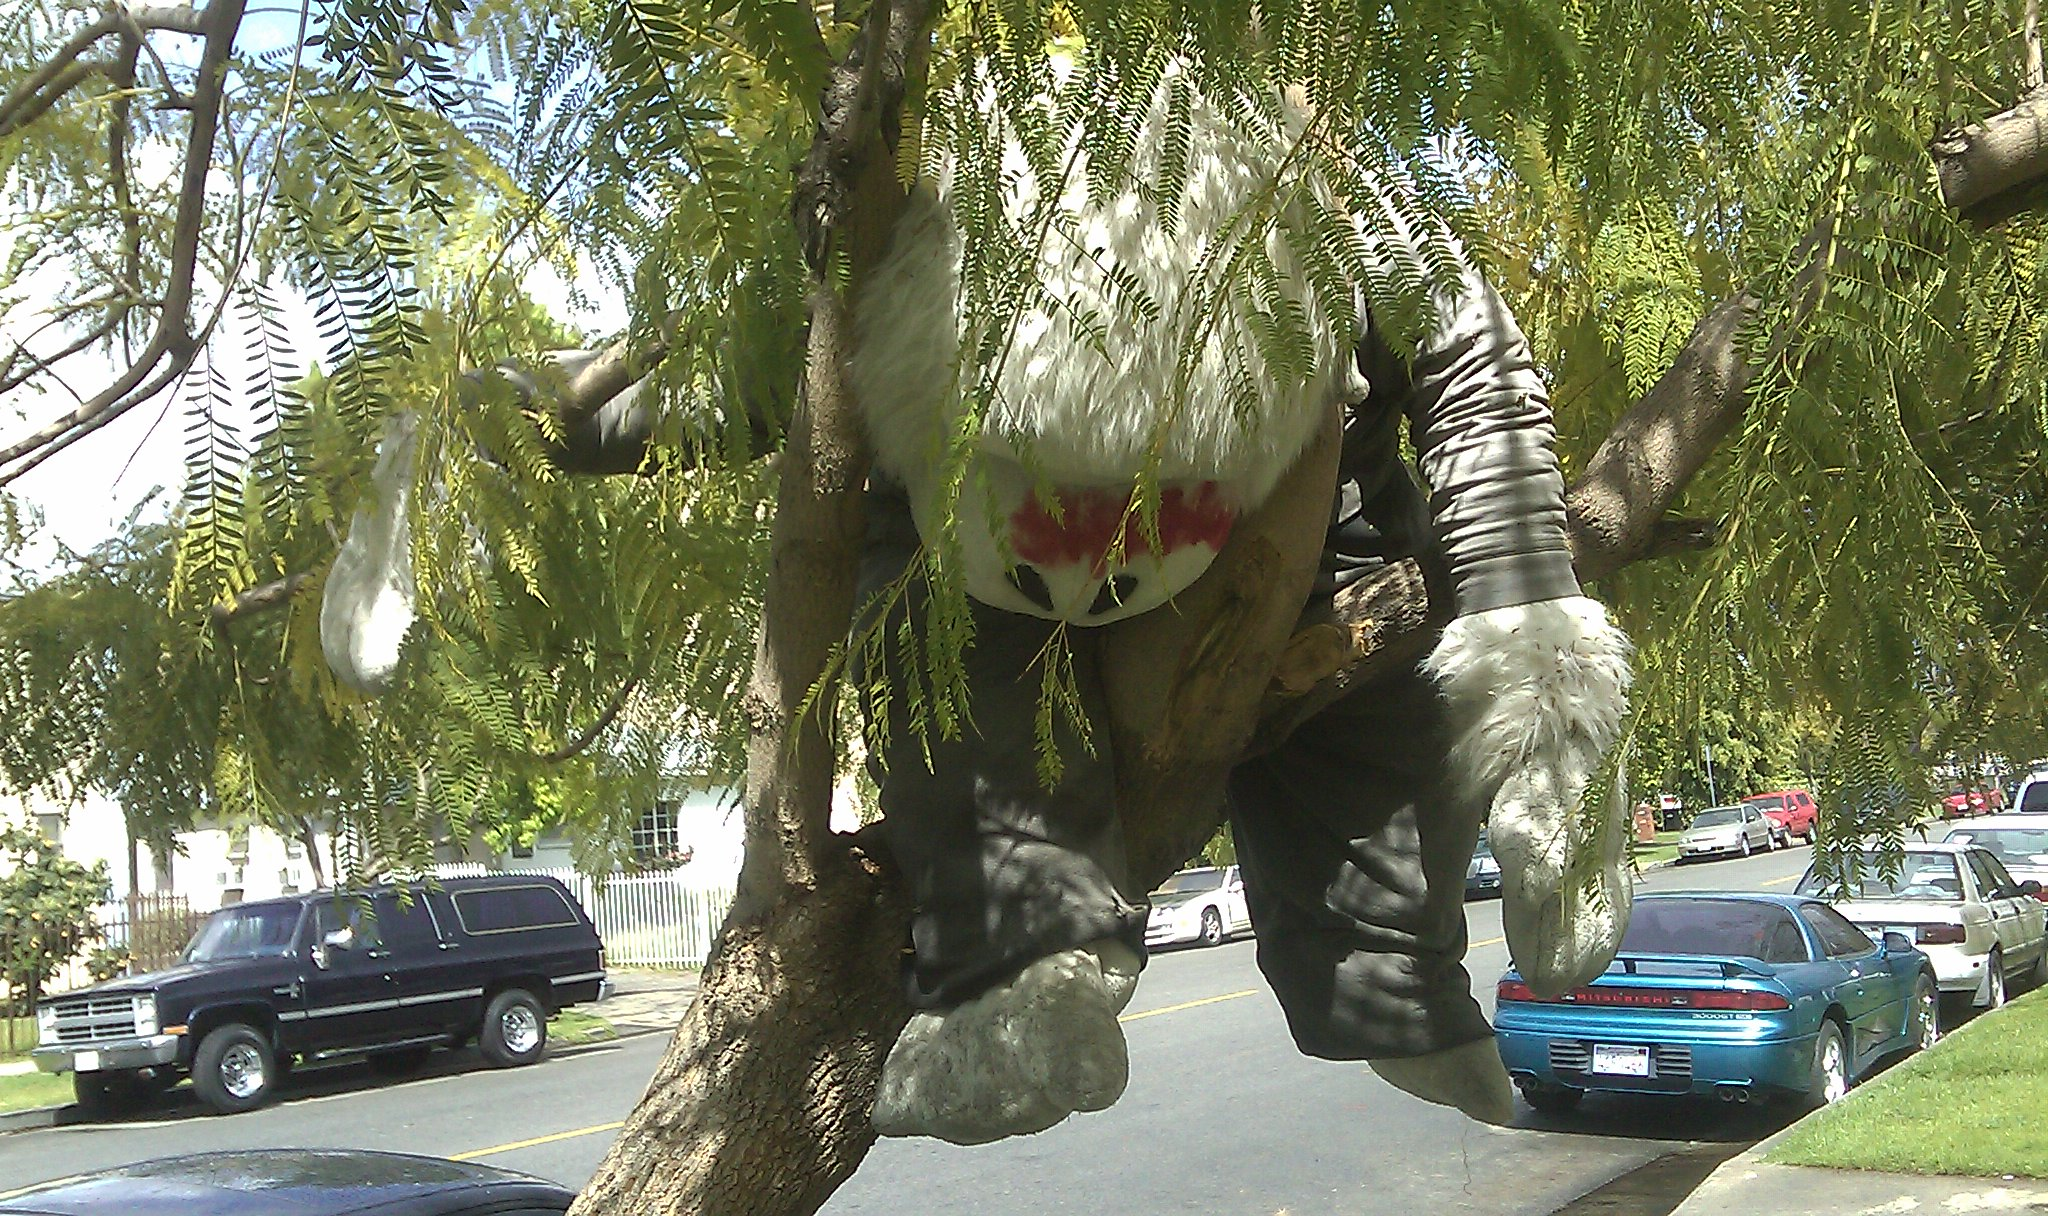 big stuffed monkey in a tree